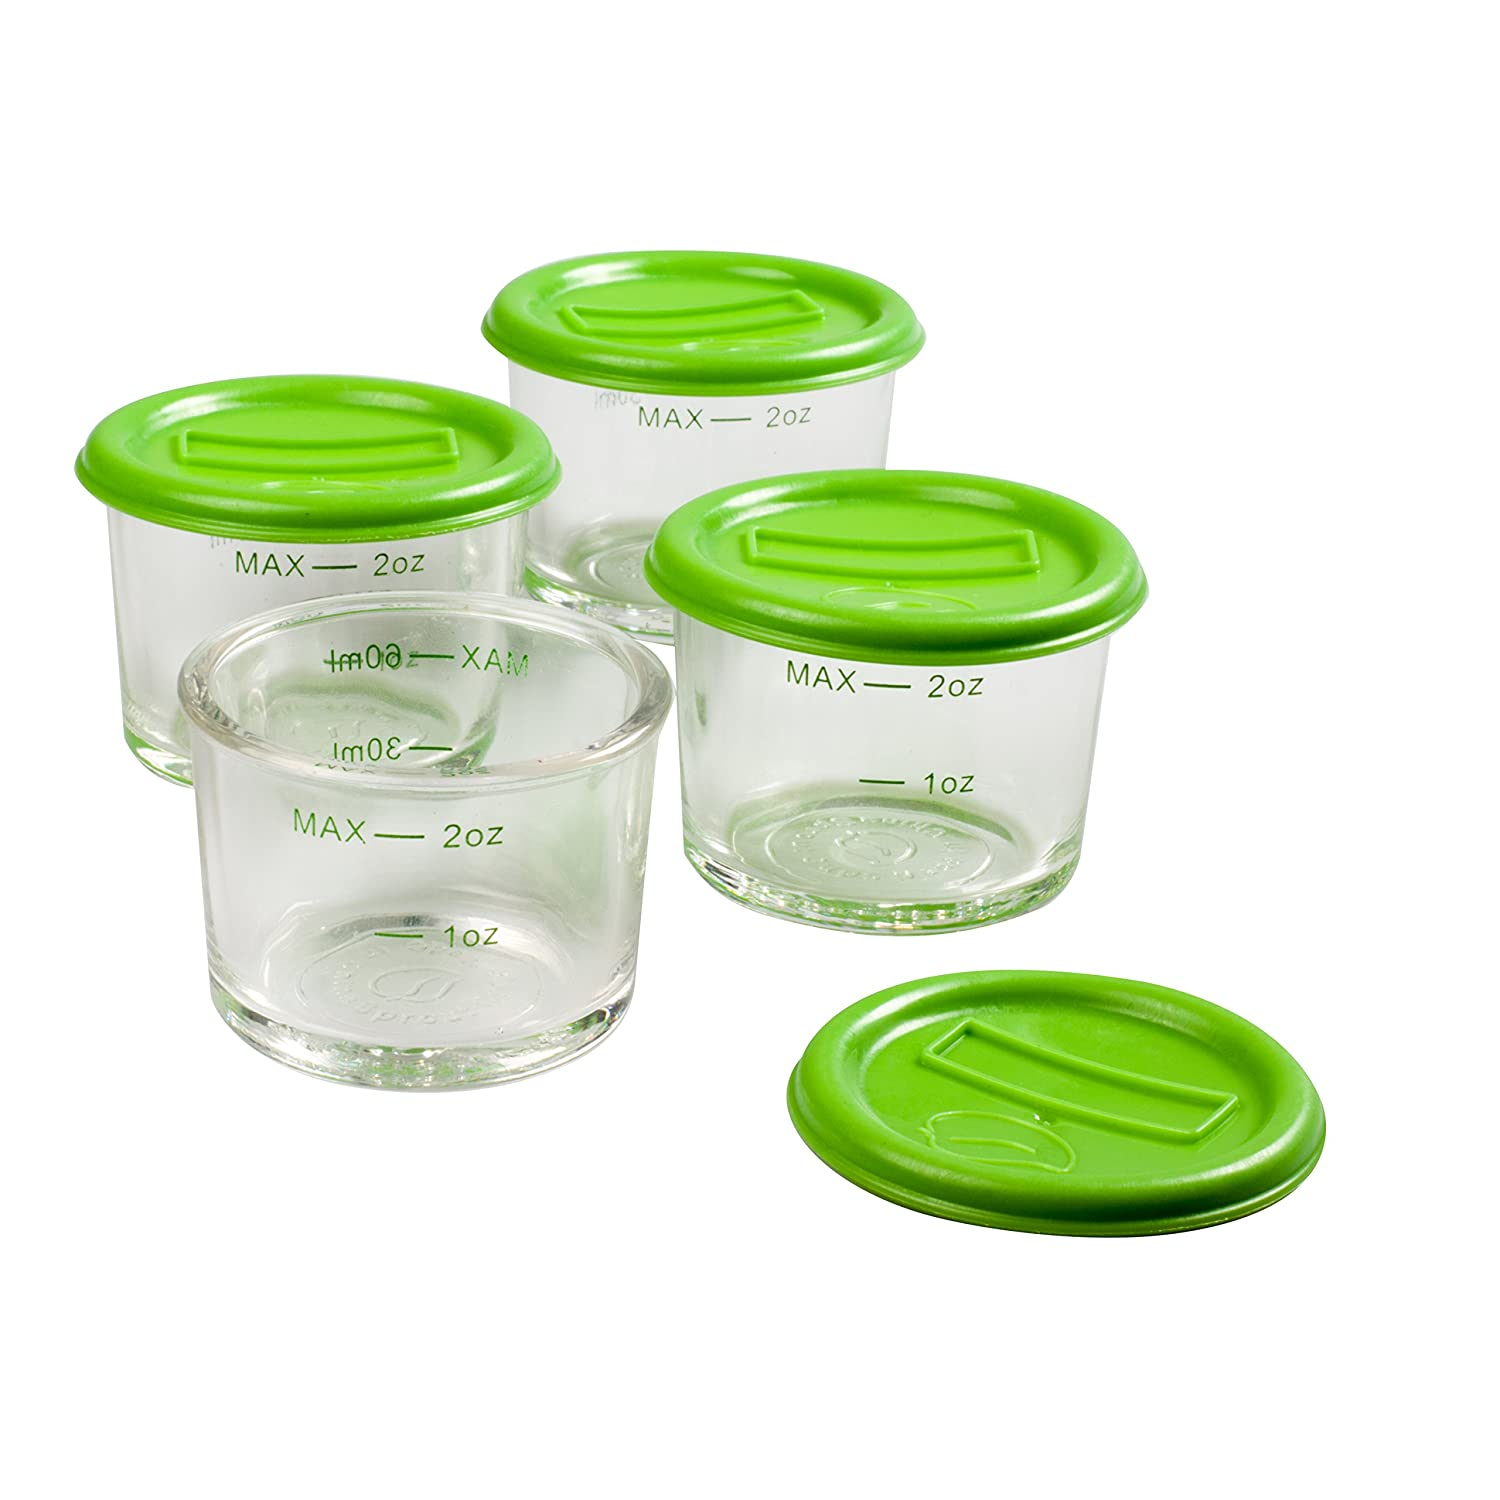 Amazon.com  Glass Baby Food Jars 4pk 2oz - Microwavable Freezer u0026 Dishwasher Safe  Baby  sc 1 st  Amazon.com & Amazon.com : Glass Baby Food Jars 4pk 2oz - Microwavable Freezer ...